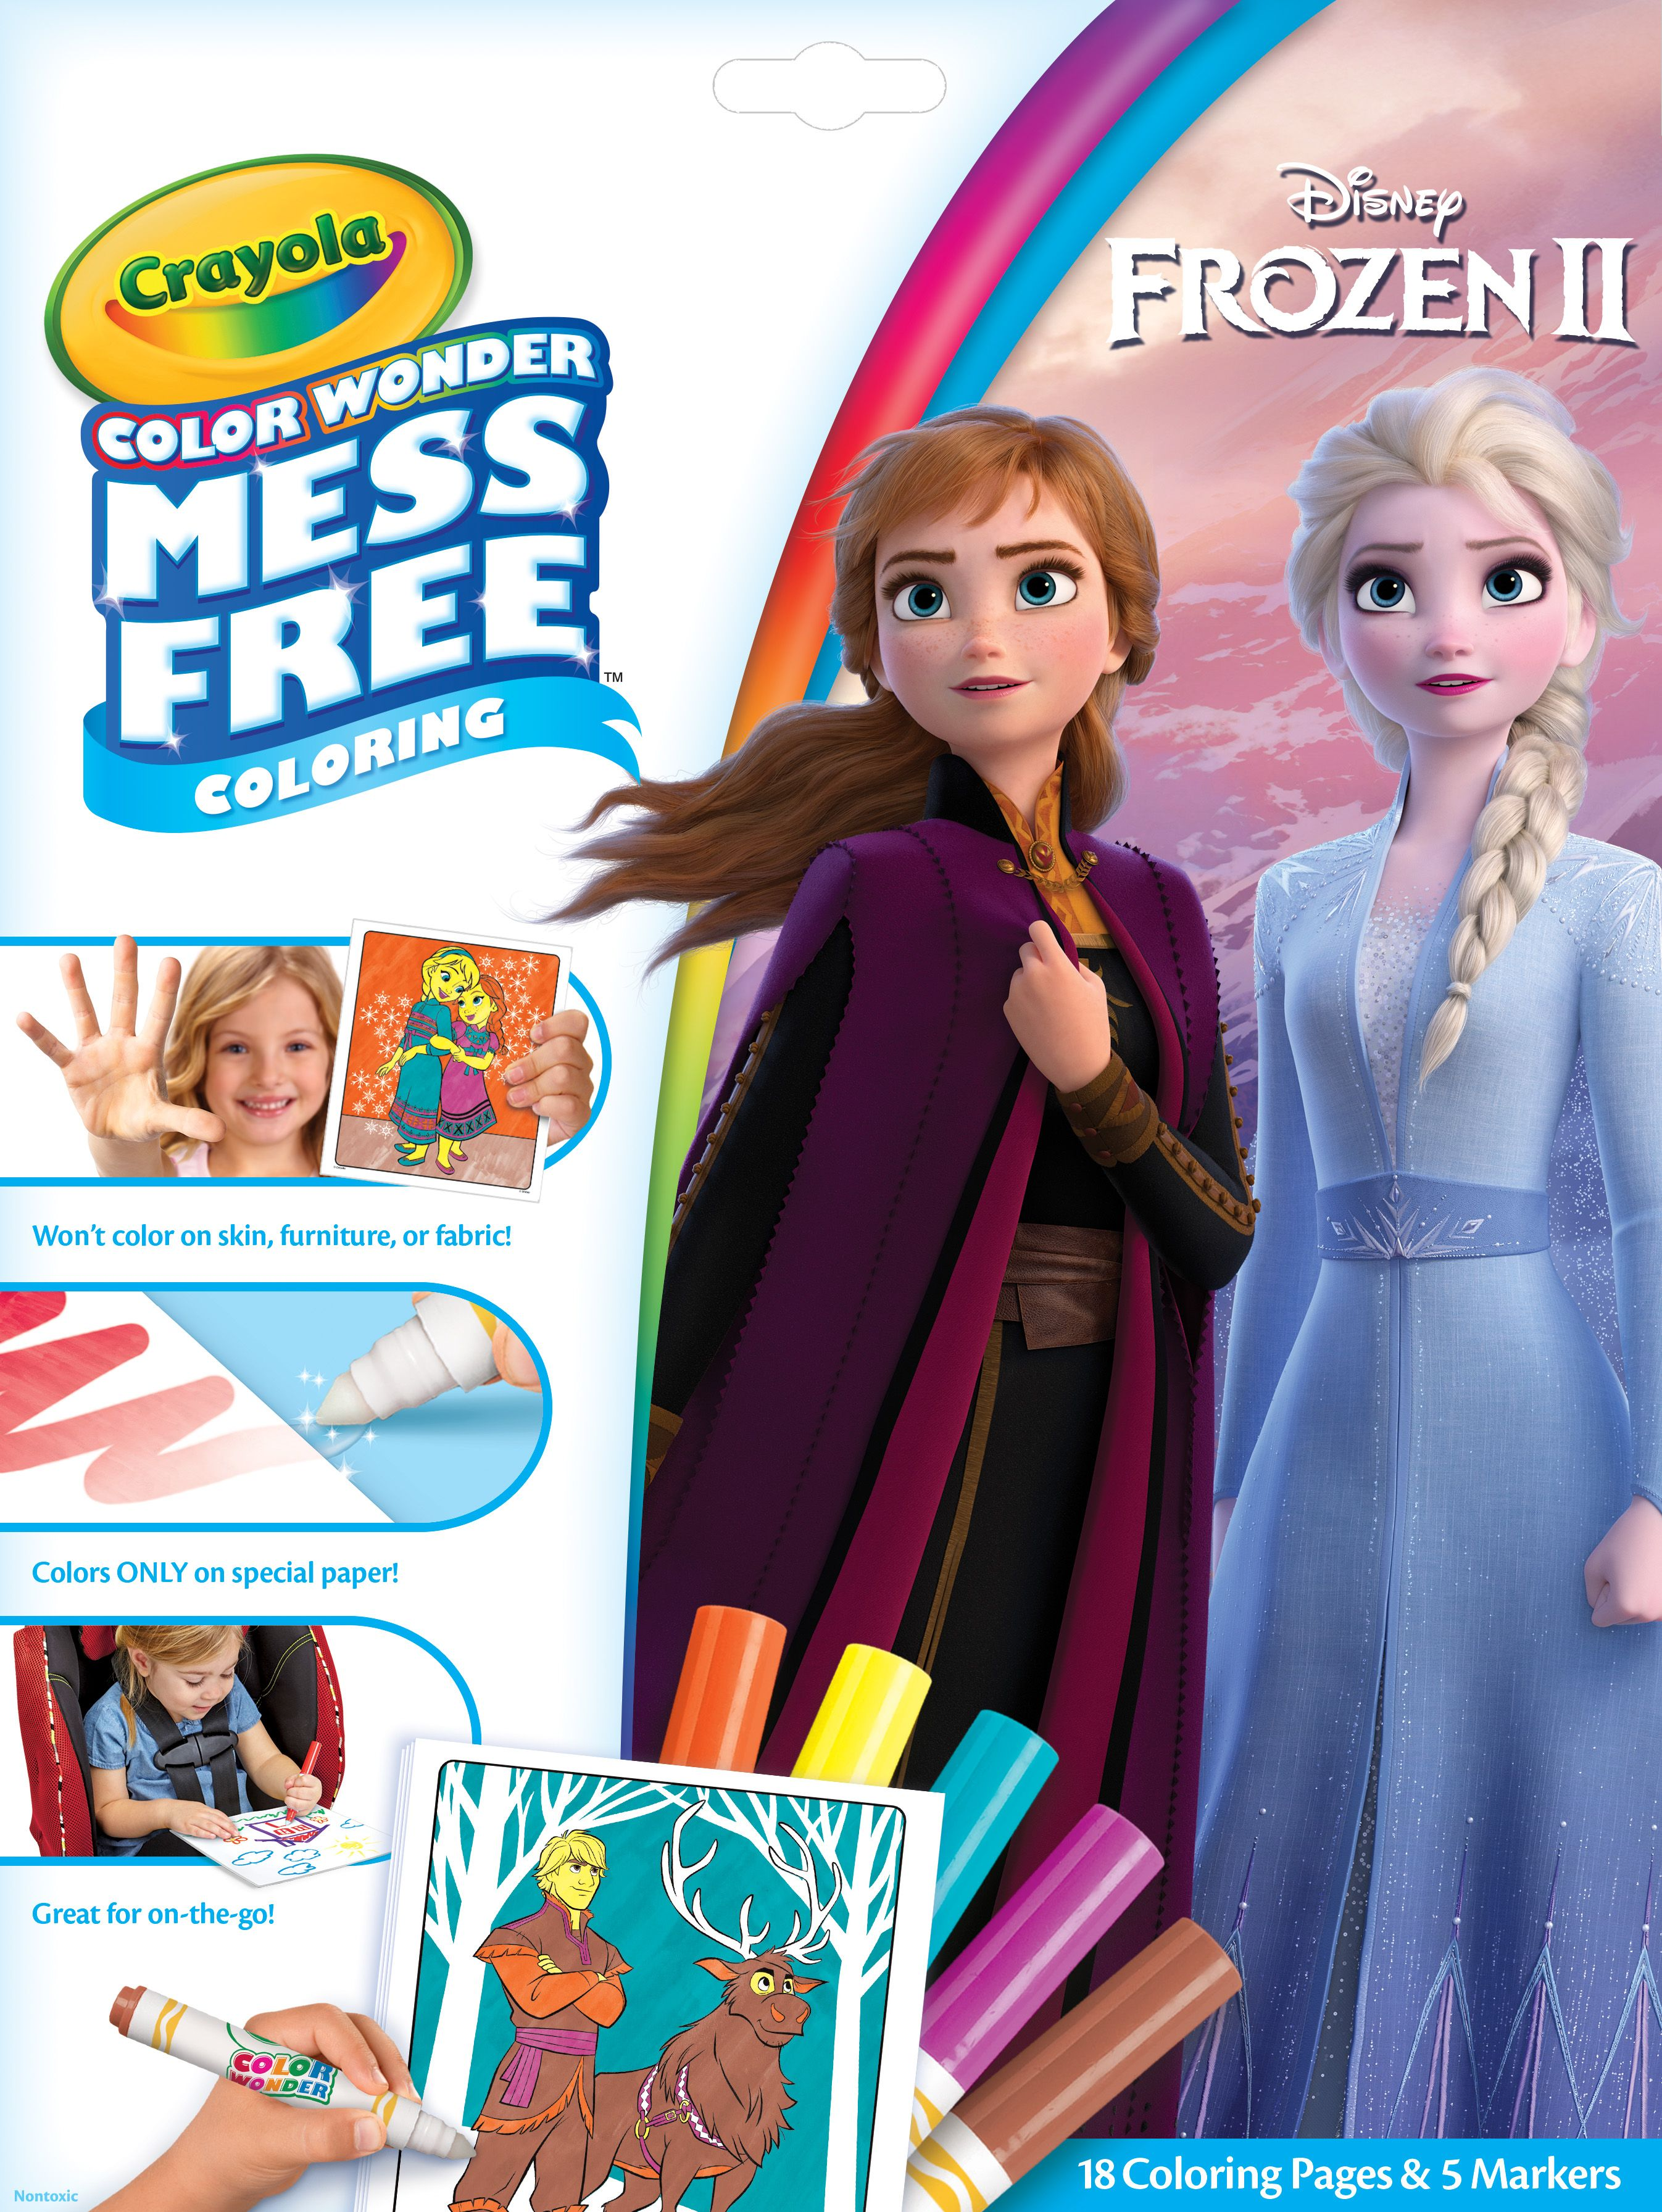 Crayola Color Wonder Mess Free Frozen 2 Coloring Set 18 Pages Child Ages 3 Walmart Com Color Wonder Barbie Coloring Pages Barbie Coloring